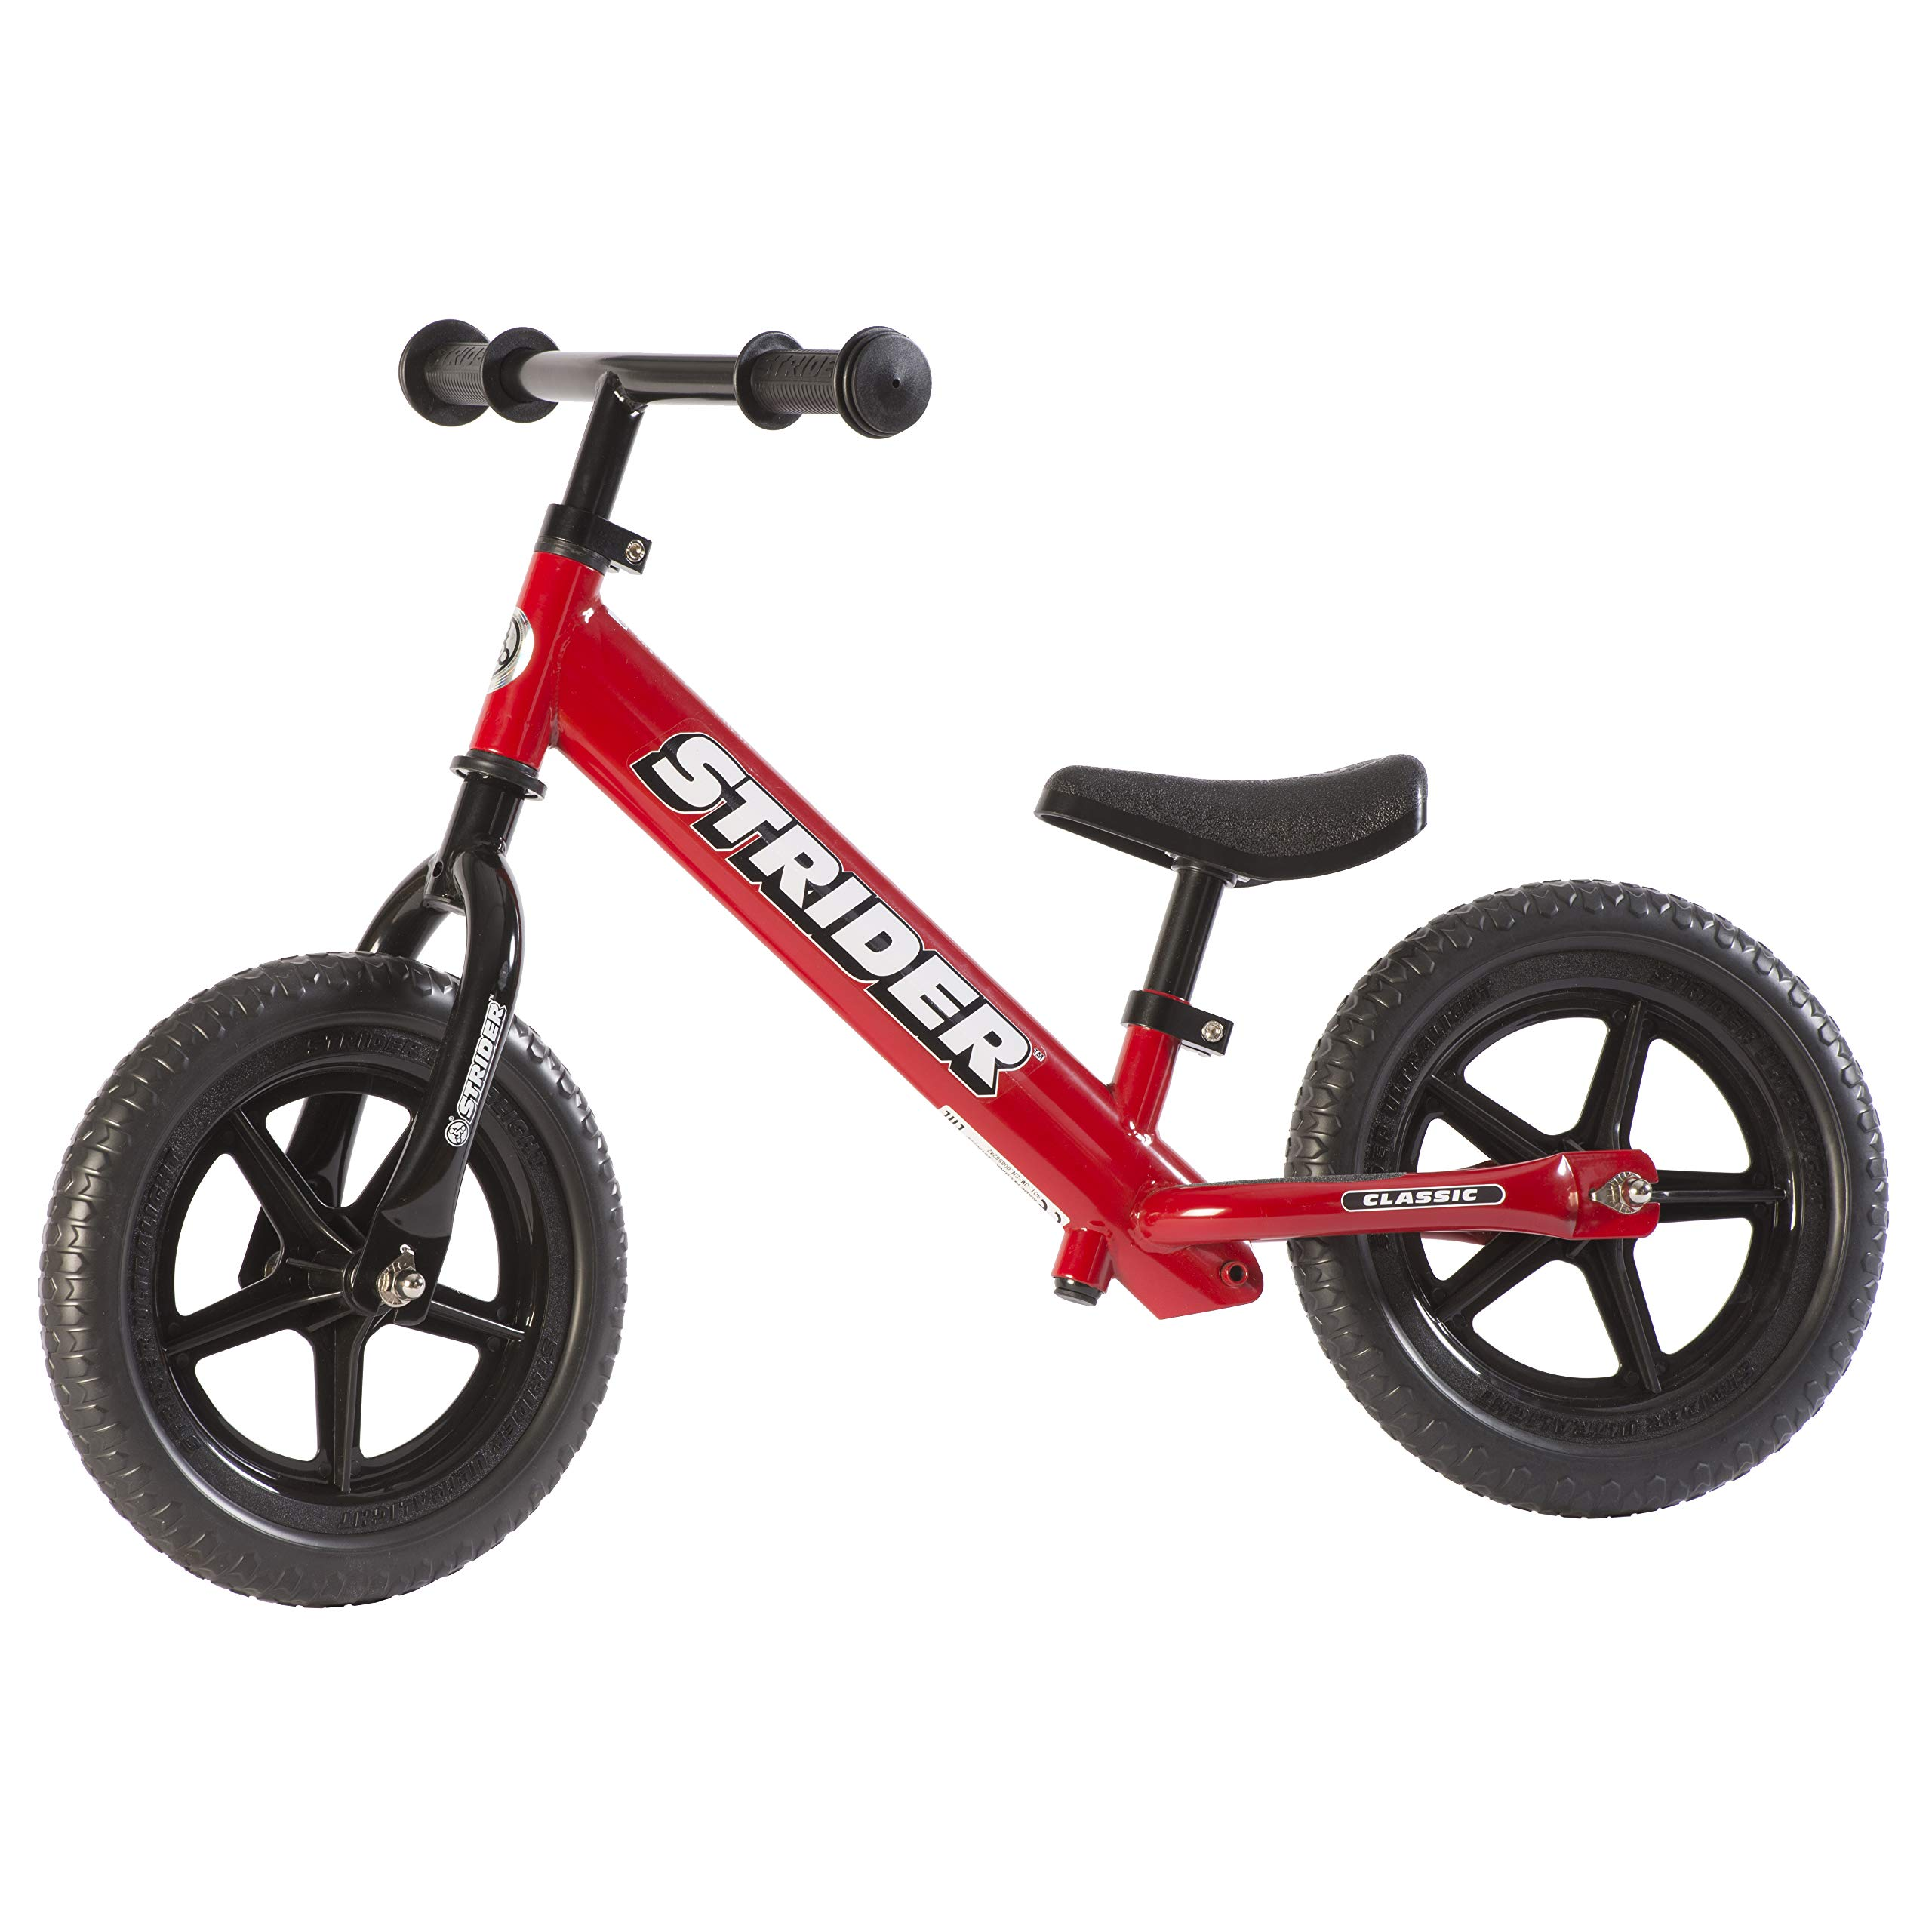 Strider - 12 Classic No-Pedal Balance Bike, Ages 18 Months to 3 Years, Red by Strider